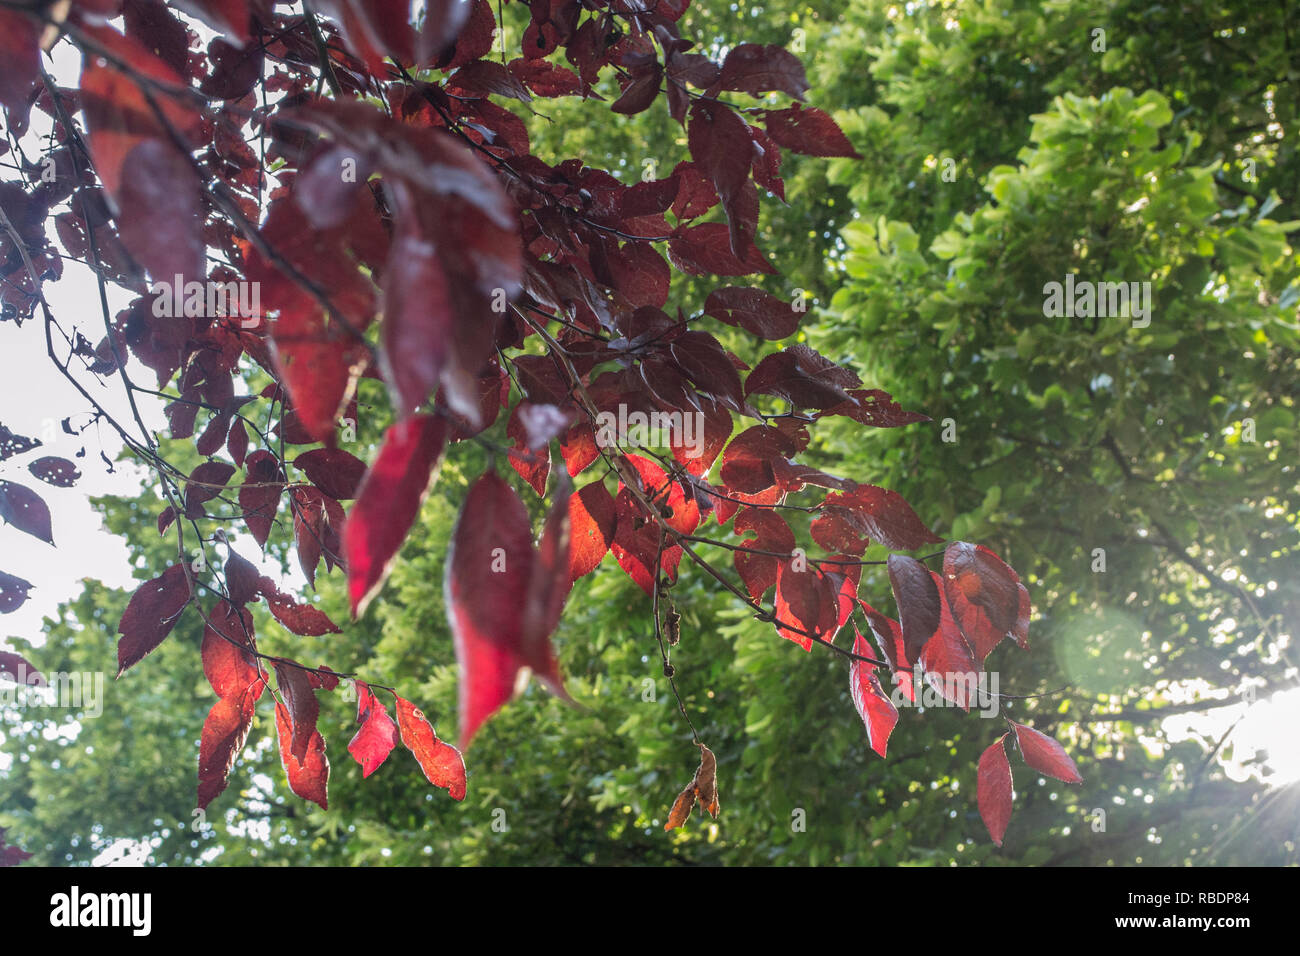 Tree With Red Leaves In The Garden On A Sunny Day Stock Photo Alamy